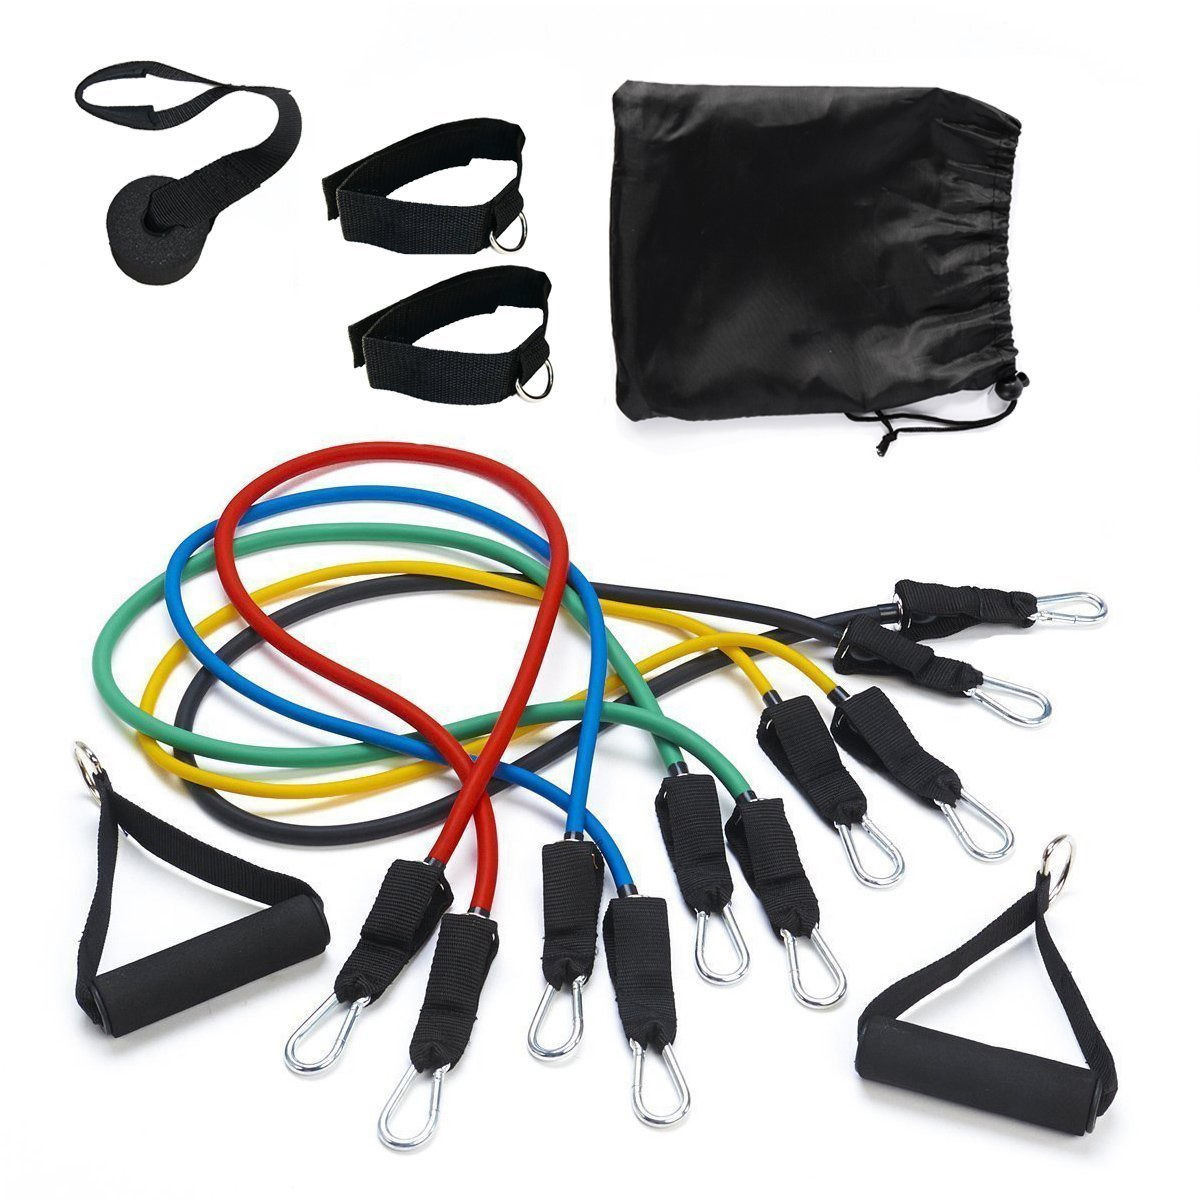 Latex Resistance Tube, Resistance Bands Workout & Elastic Band